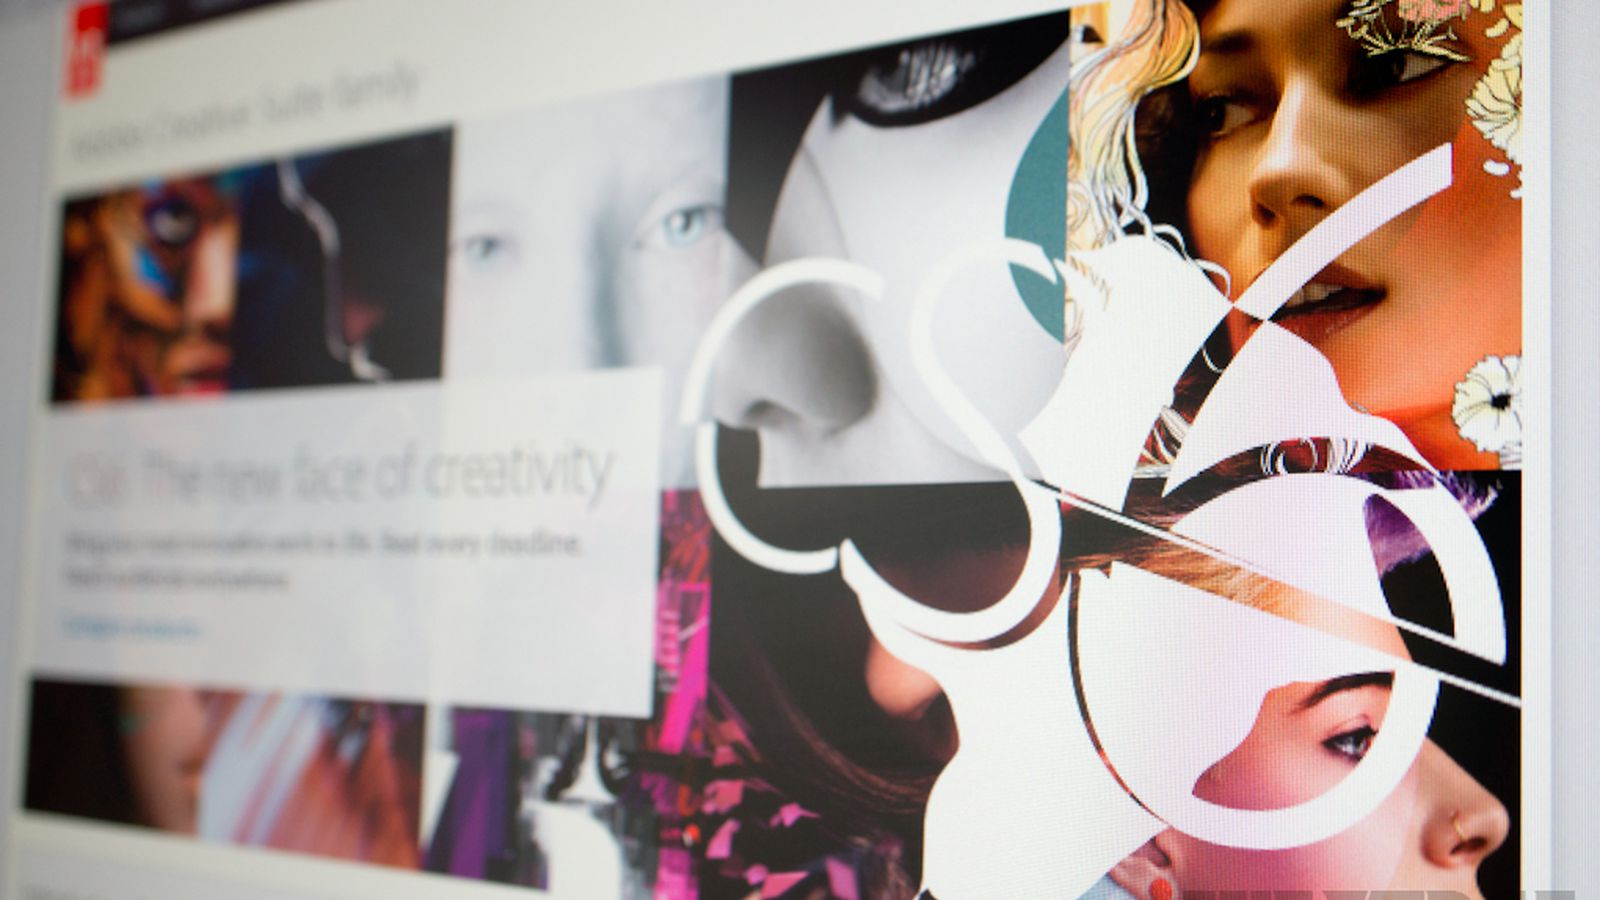 Adobe Announces Cs6 Pricing And Pre Orders Estimated Delivery May 7th The Verge